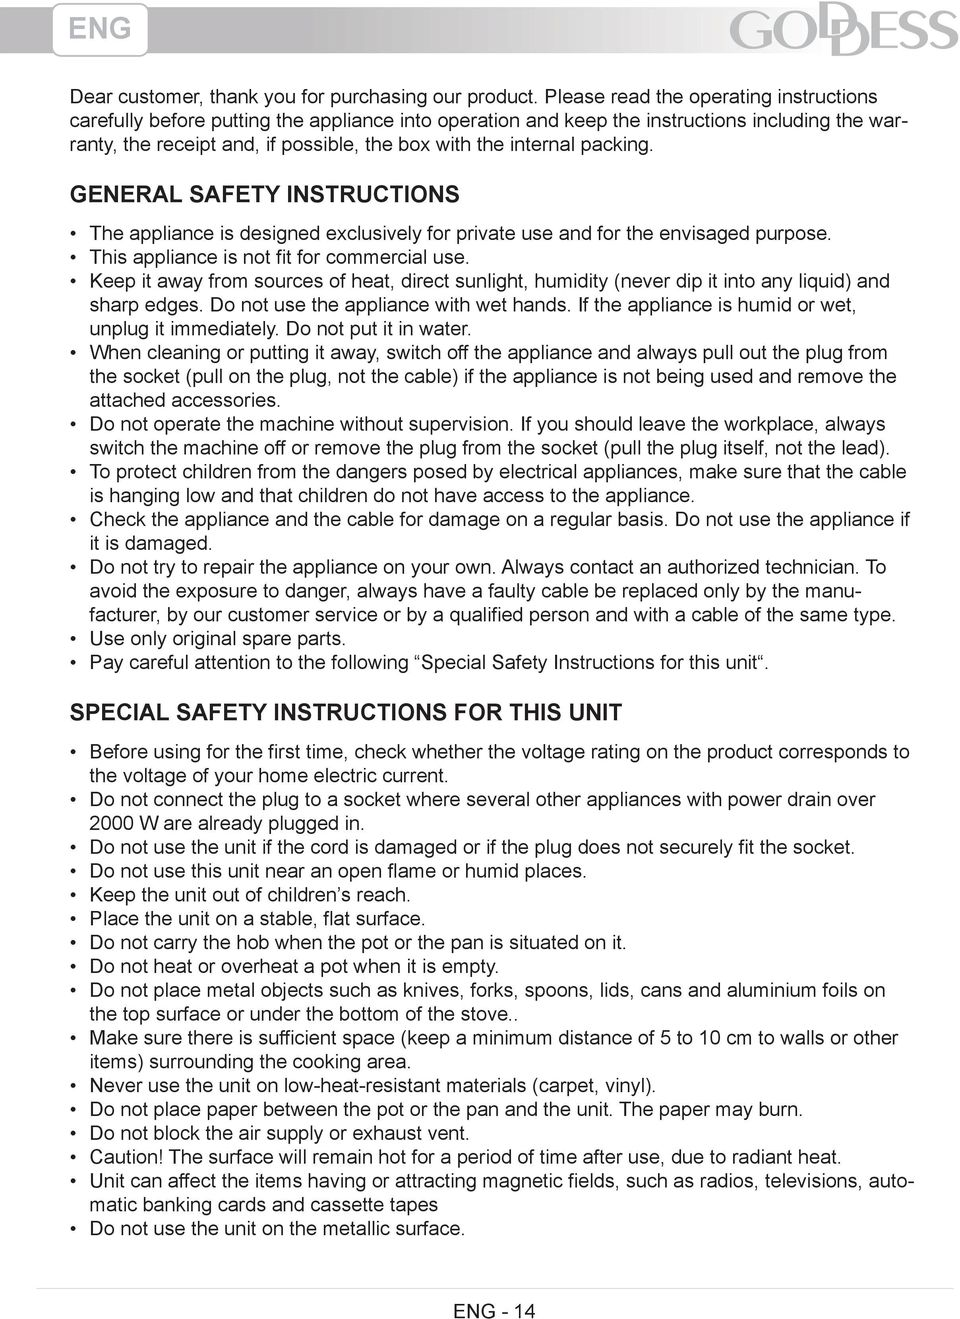 packing. General Safety Instructions The appliance is designed exclusively for private use and for the envisaged purpose. This appliance is not fit for commercial use.